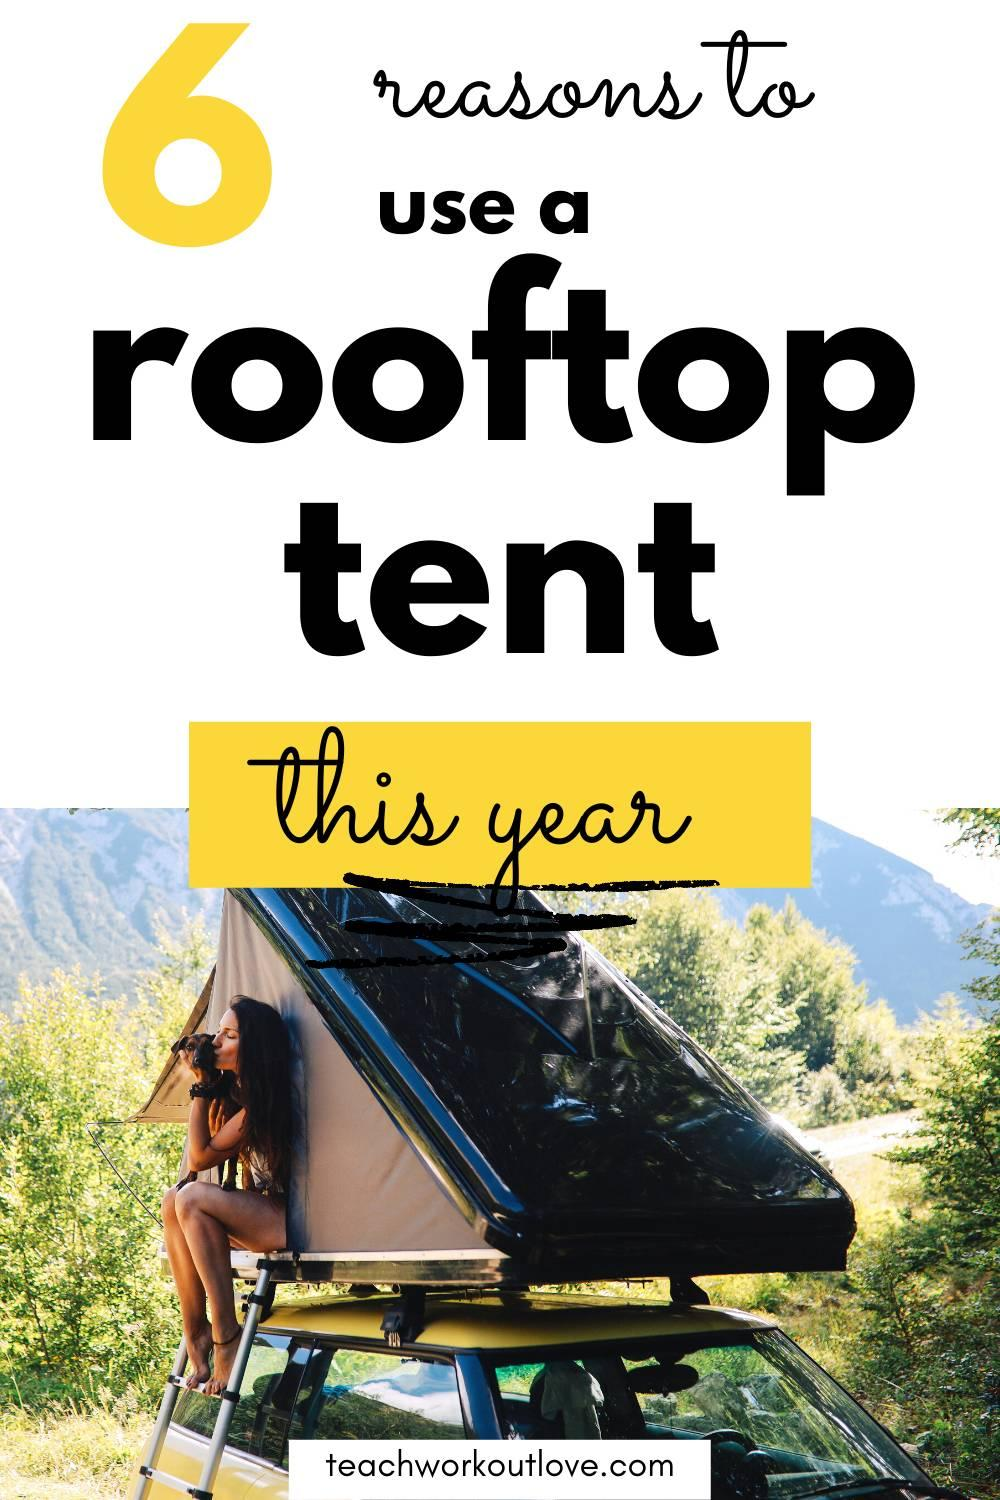 While an on-ground camping tent might be affected by common factors like climate, a rooftop tent is ideal as it is comfortable to mount, even in different weather conditions. This article will discuss six reasons why you might want to use rooftop tents.